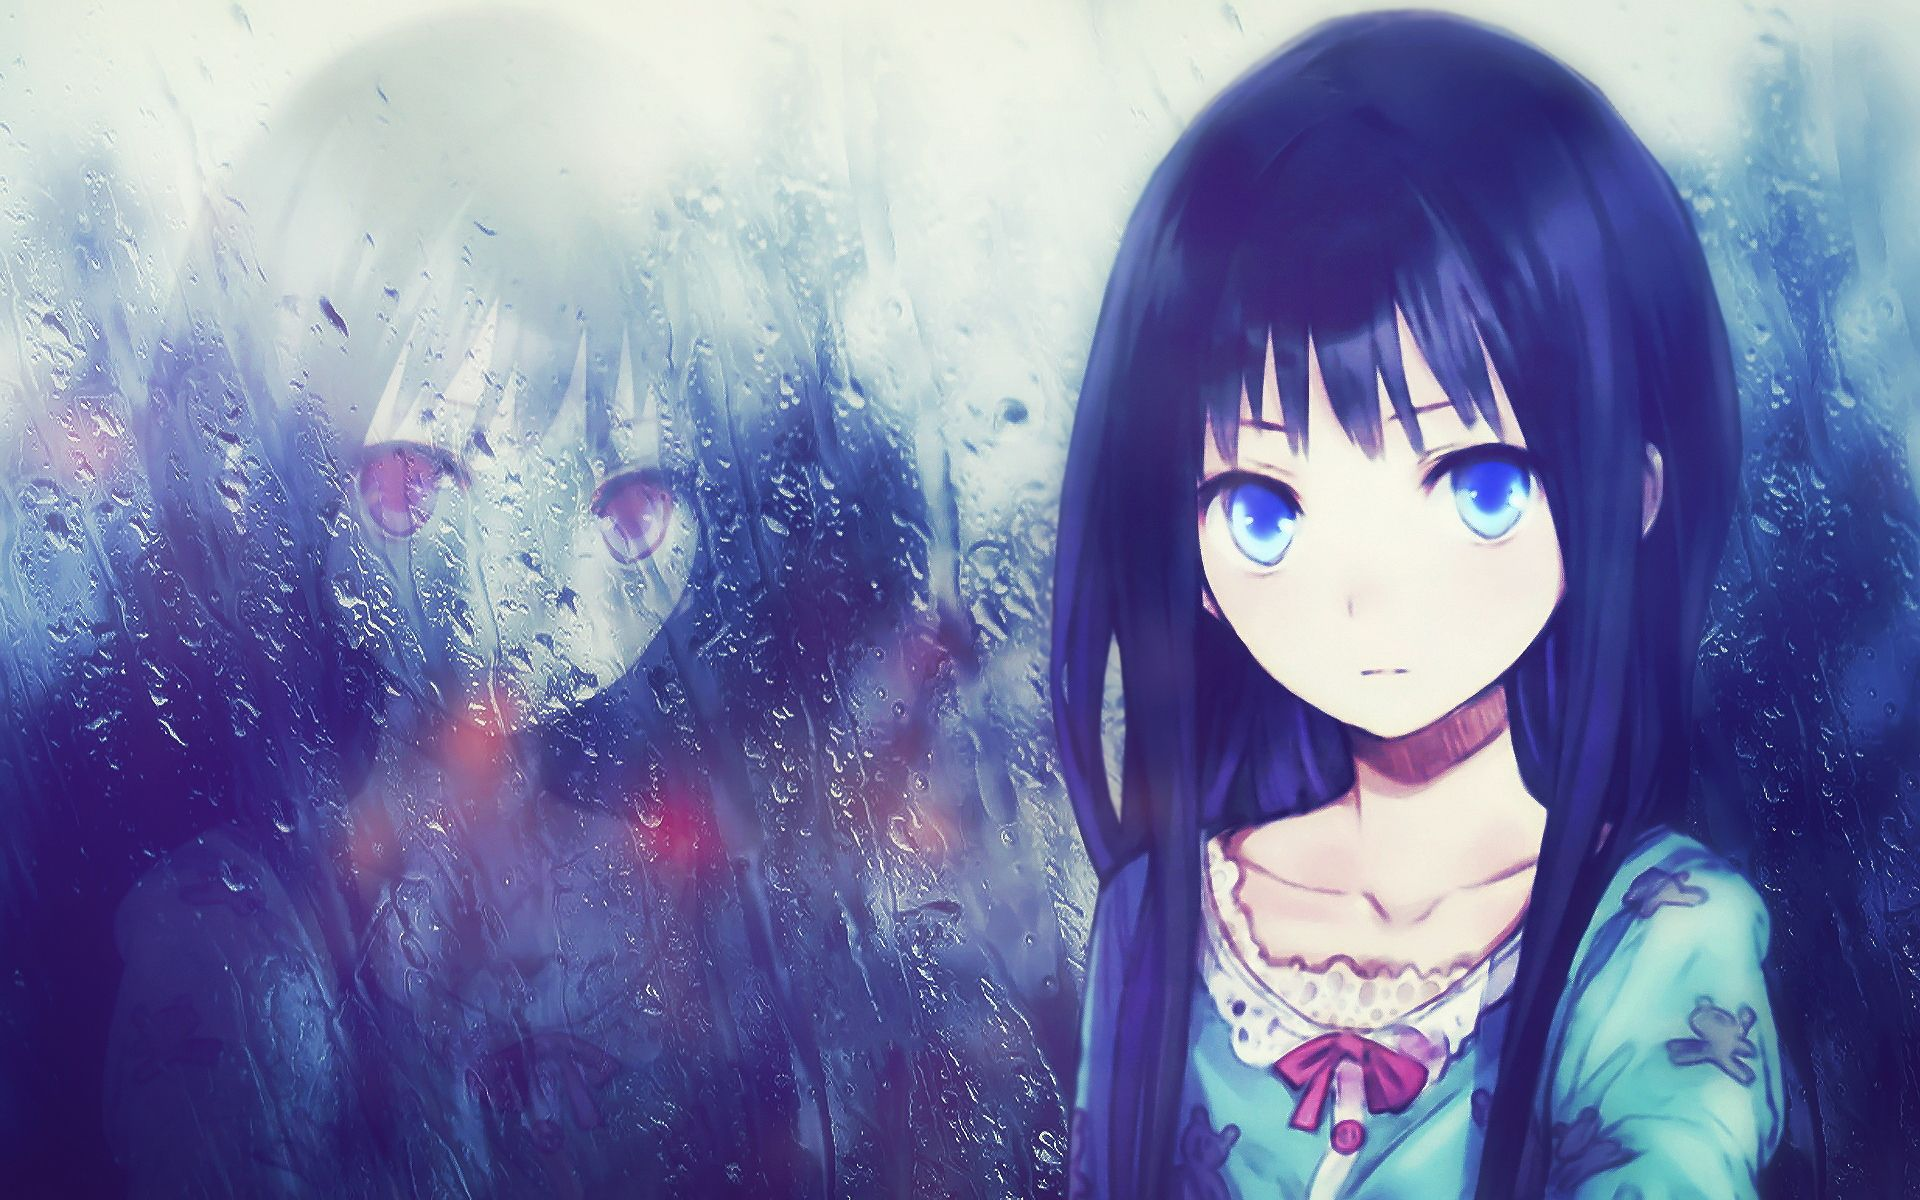 Anime Lonely Wallpapers Lonely Anime Girl Wallpaper With Resolutions X Pixel